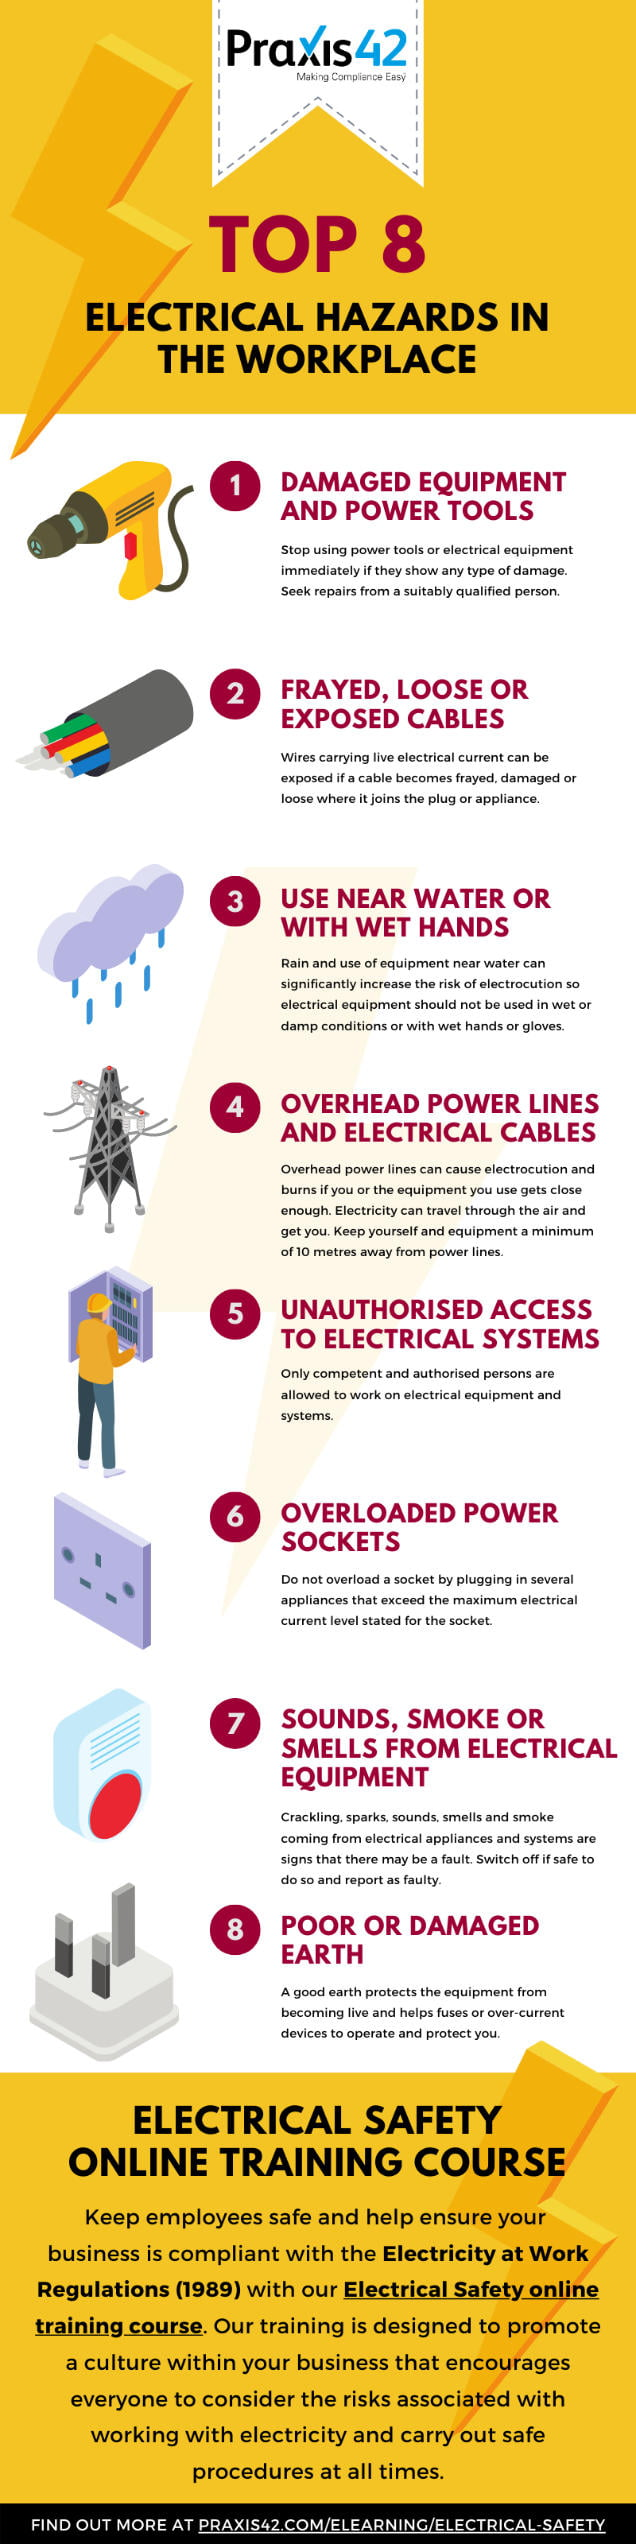 Electrical hazards in the workplace - infographic